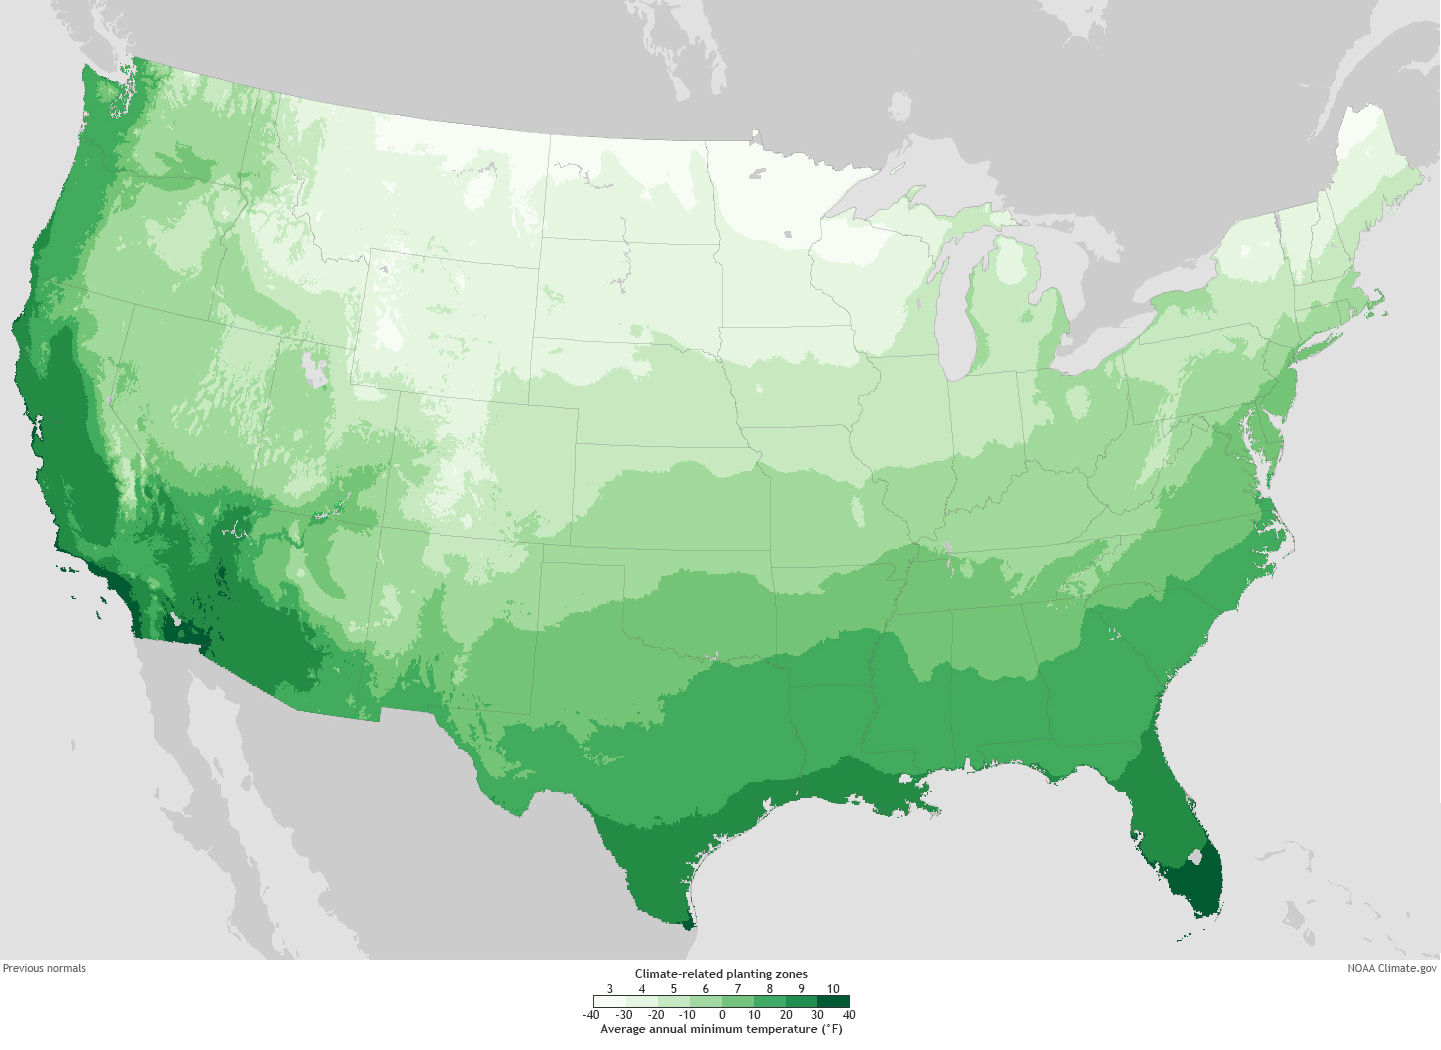 Old climate-related planting zones